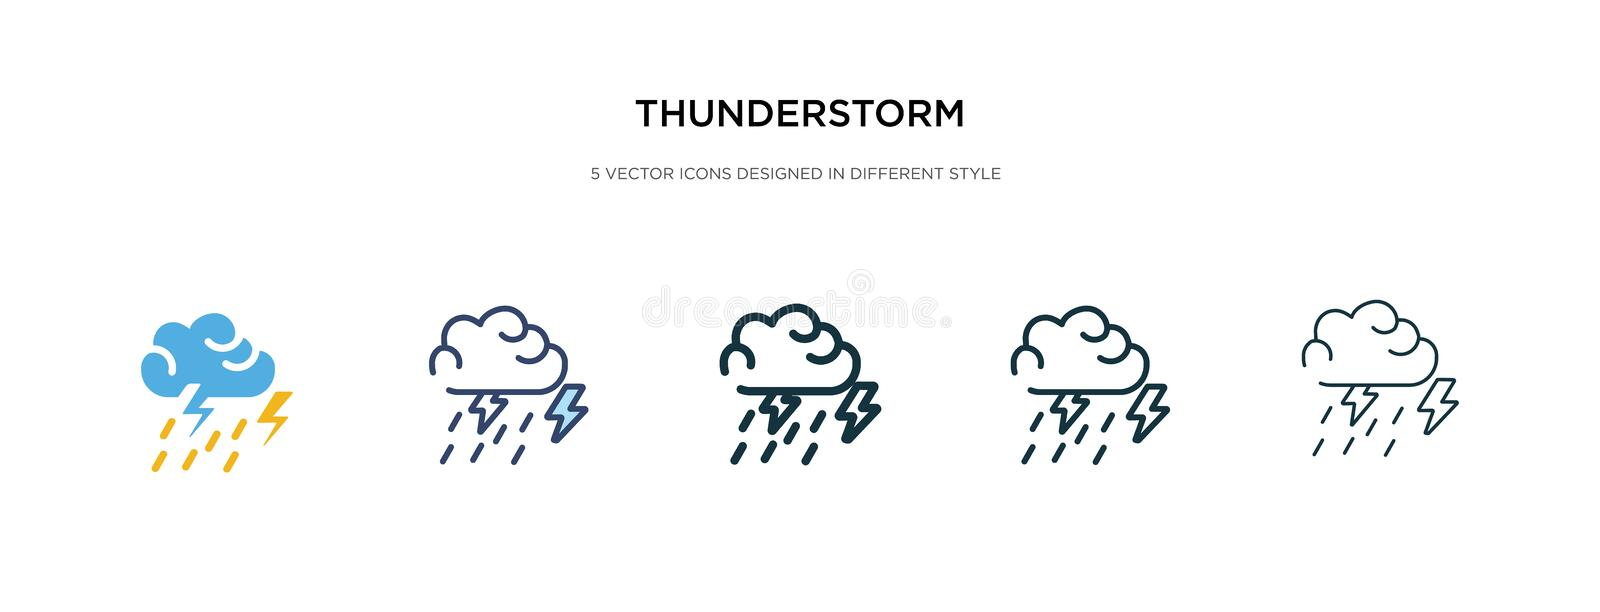 Thunderstorm icon in different style vector illustration. two colored and black thunderstorm vector icons designed in filled, stock illustration